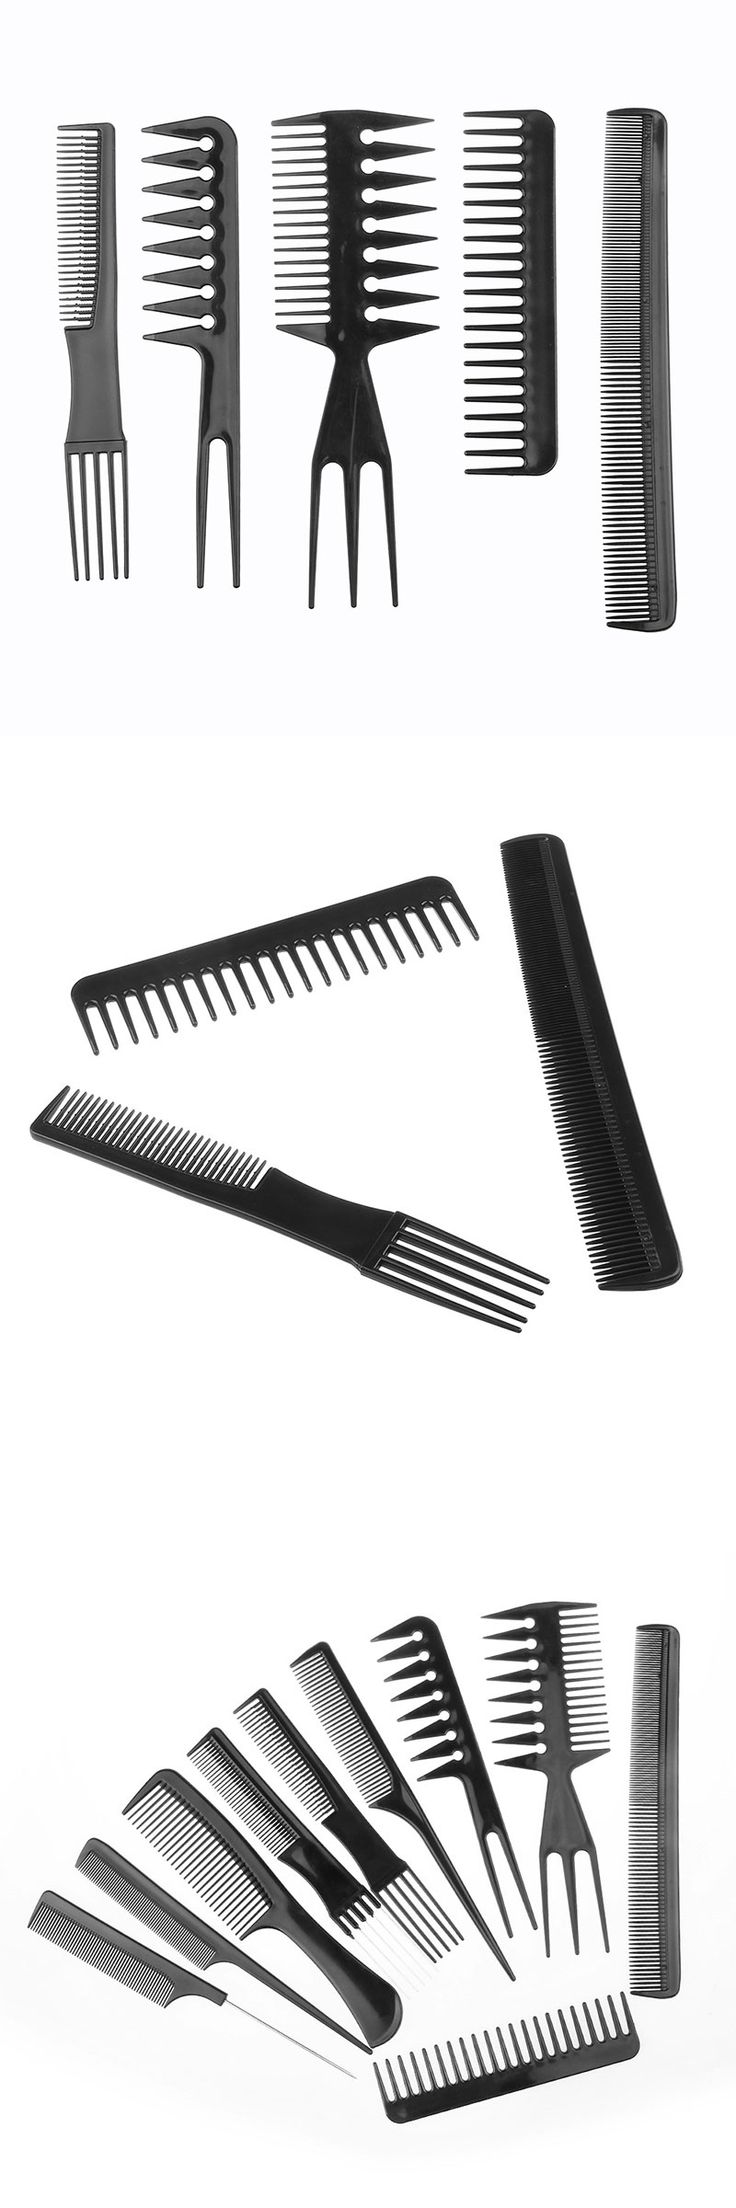 10pcs Hair Styling DIY Tool Comb Anti-static Barbershop Style Makeup Brush Salon Products HJL2017